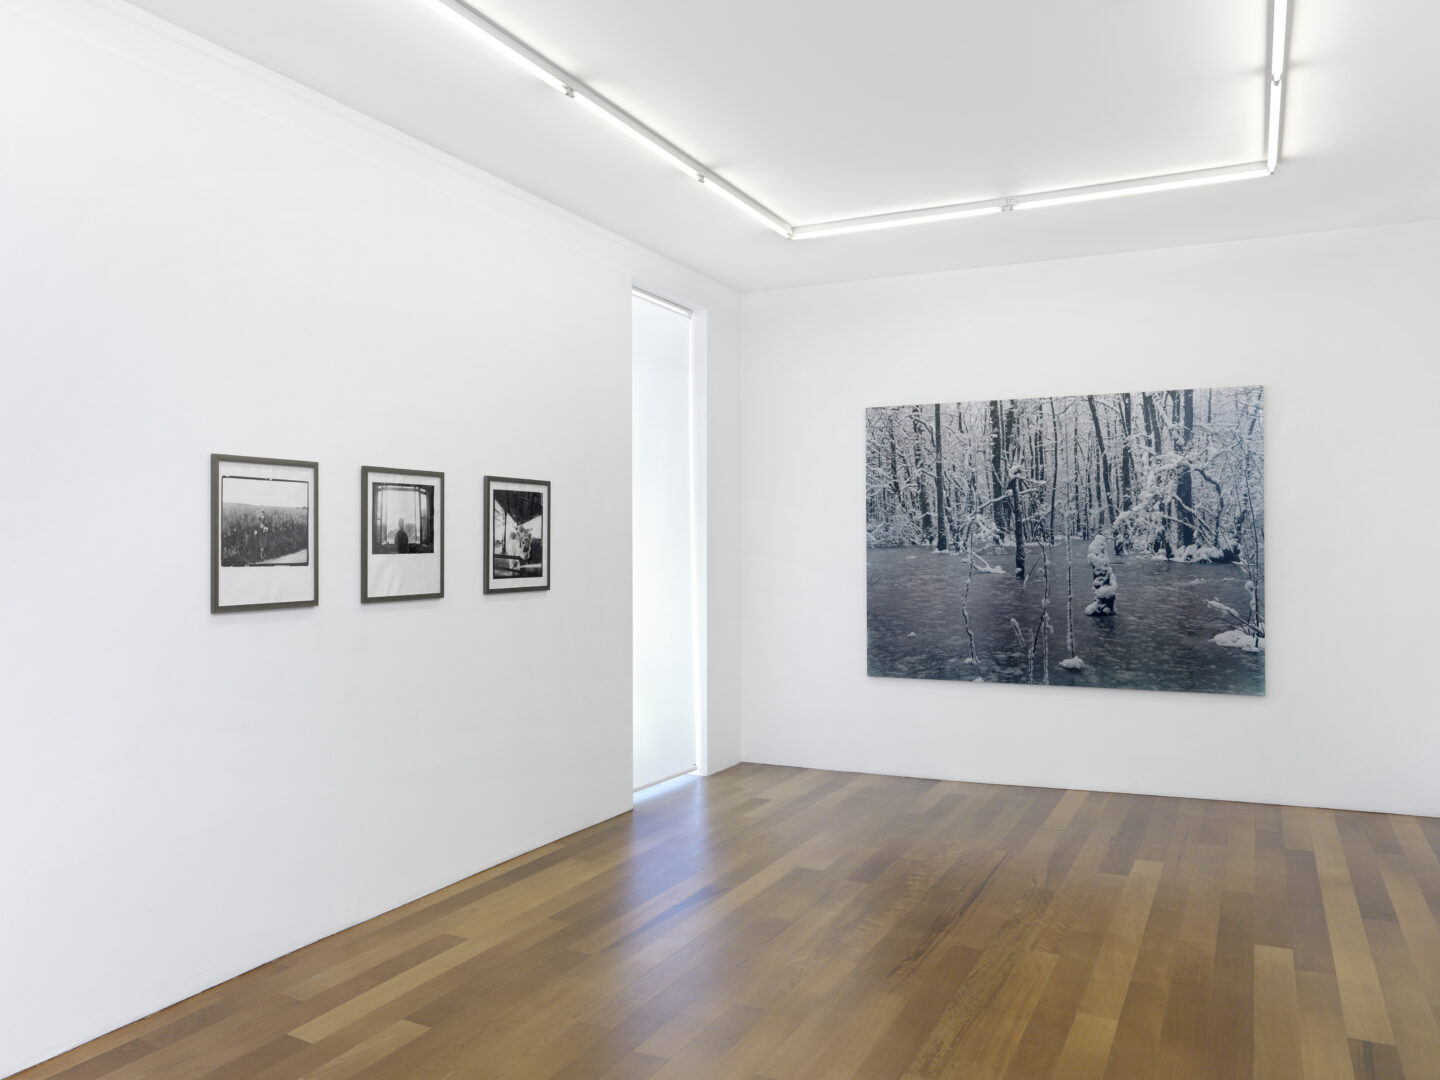 Exhibition View Groupshow by Albert Baronian «Le Choix d'Albert; view on Marc Trivier, L'enfant au loup, 1991; Sils Maria, 1994; Abattoir, 1980 -1990 and Eric Poitevin, Neige, 2004» at Xippas, Geneva / Photo: Annik Wetter